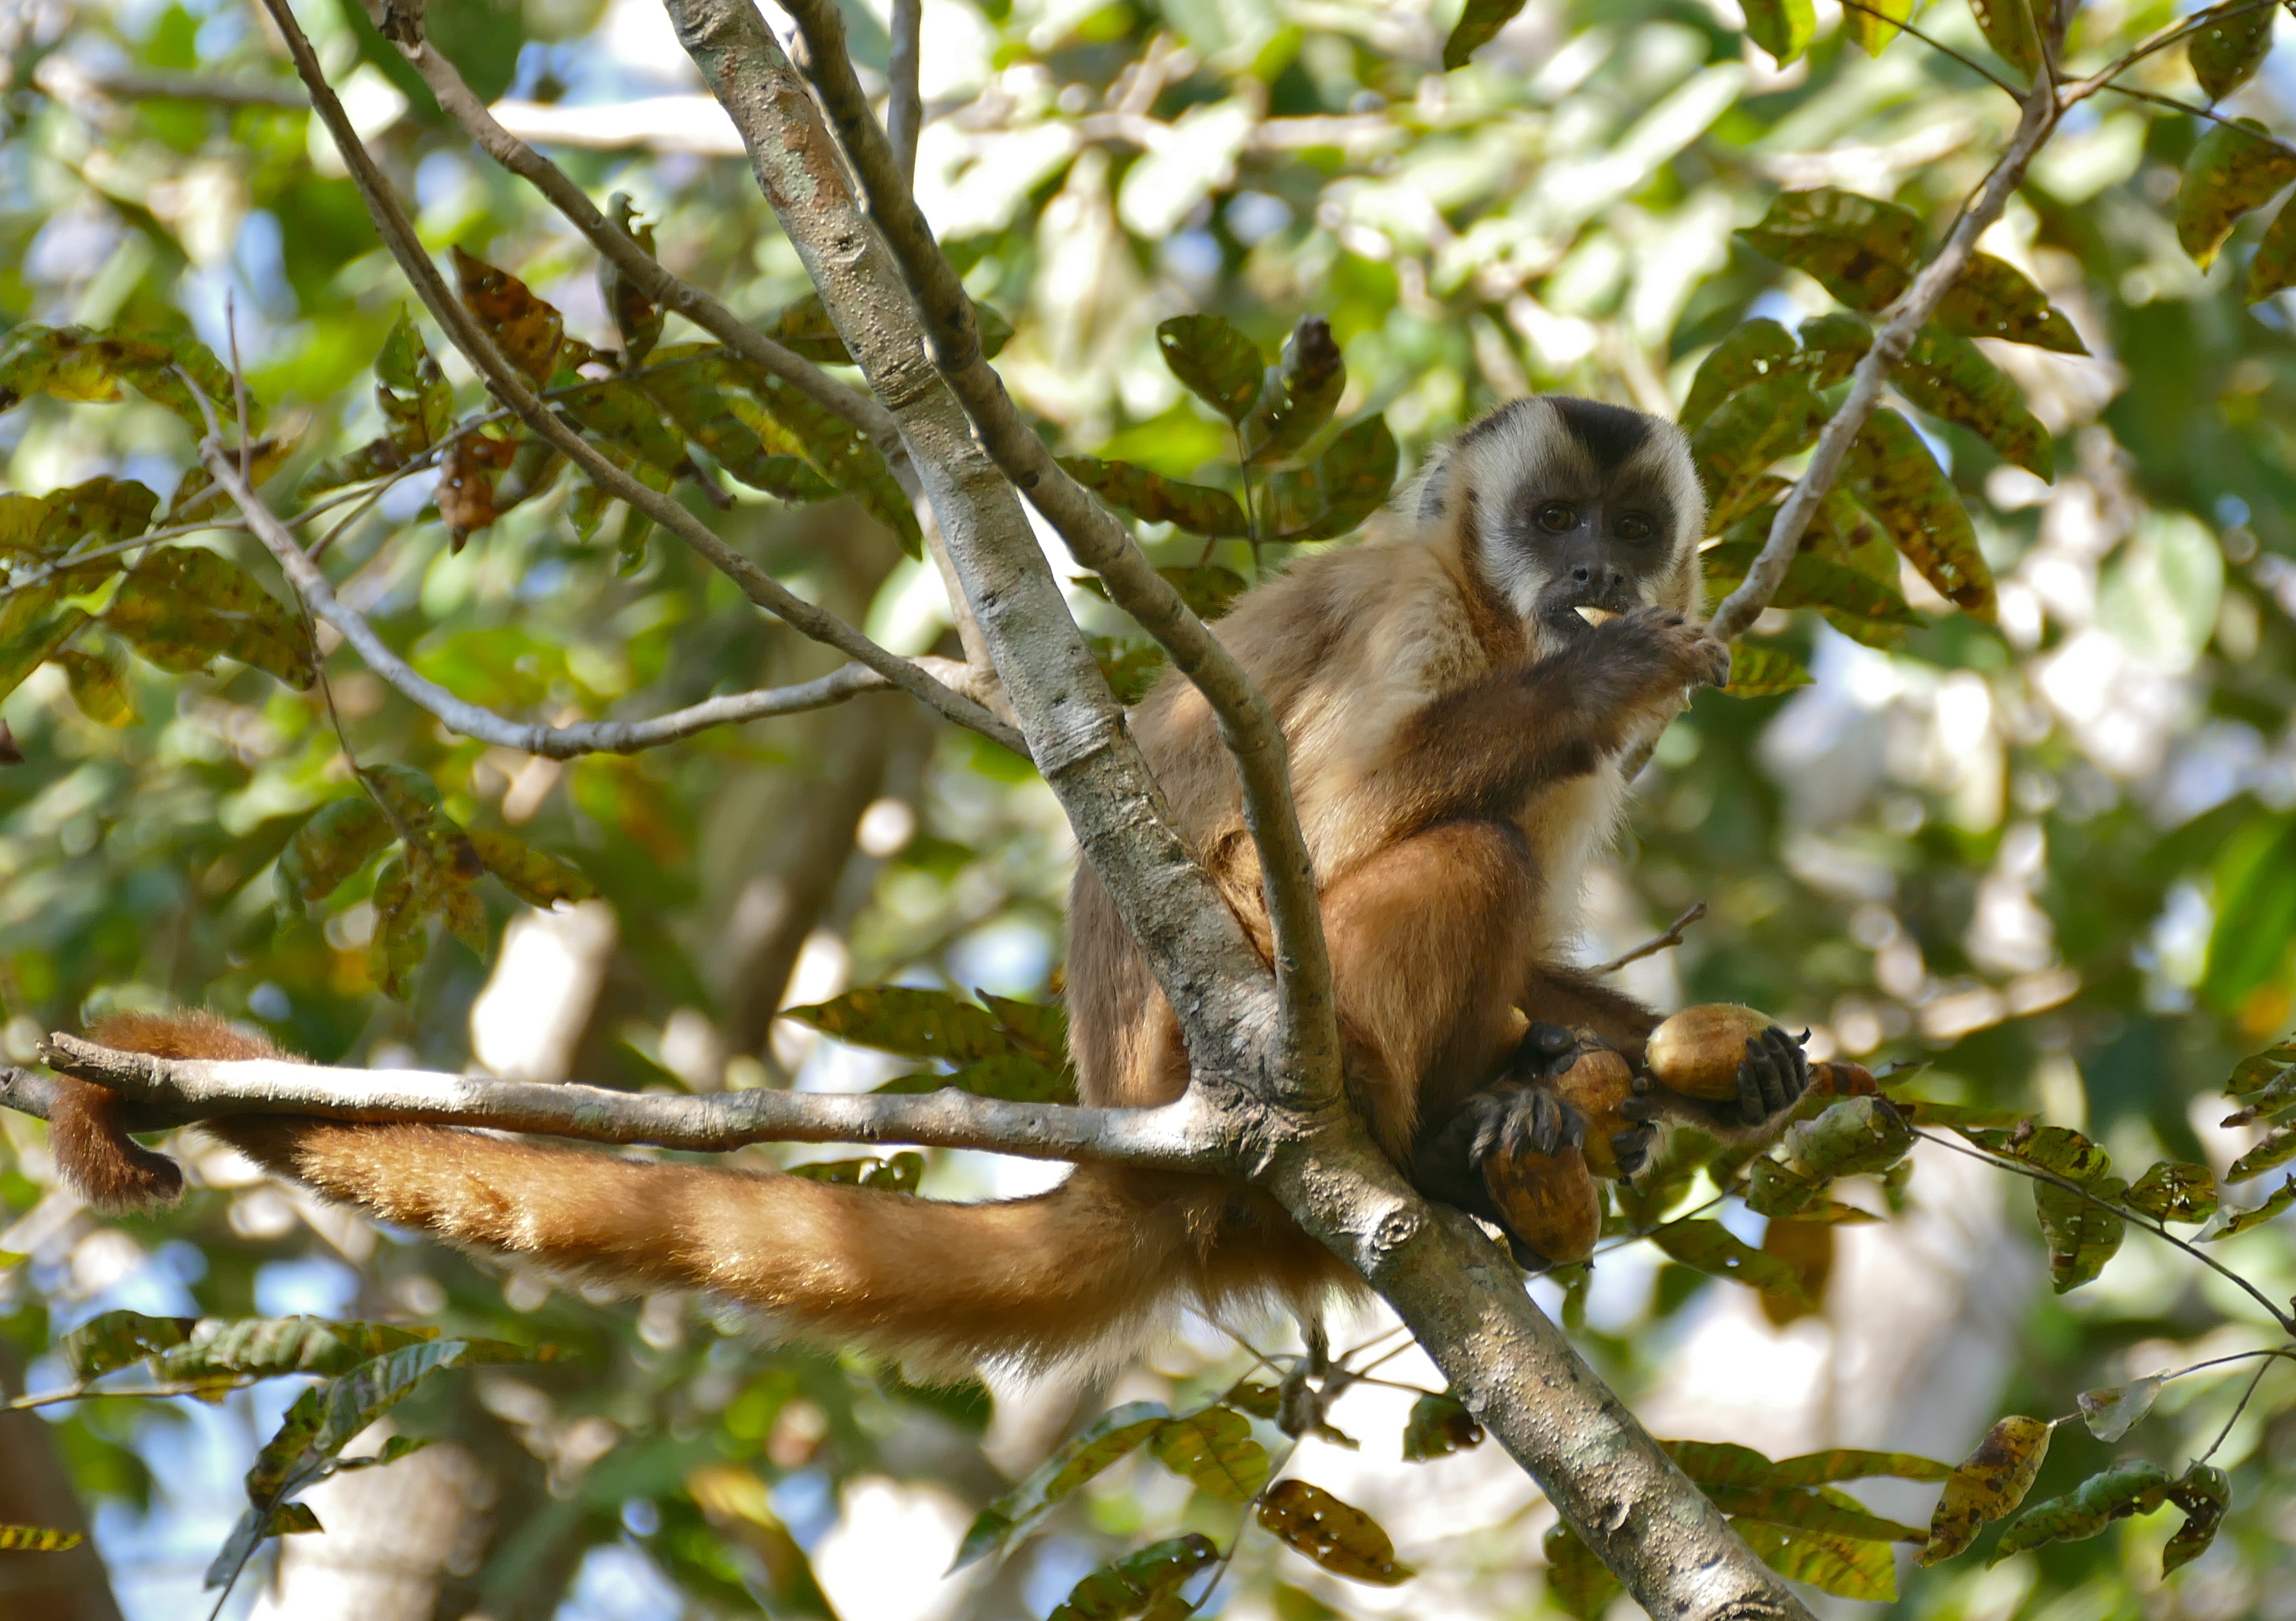 San Rafael's forests are home to a multitude of species, including this hooded capuchin (Sapajus cay). Image by Bernard Dupont via Wikimedia Commons (CC BY-SA 2.0).